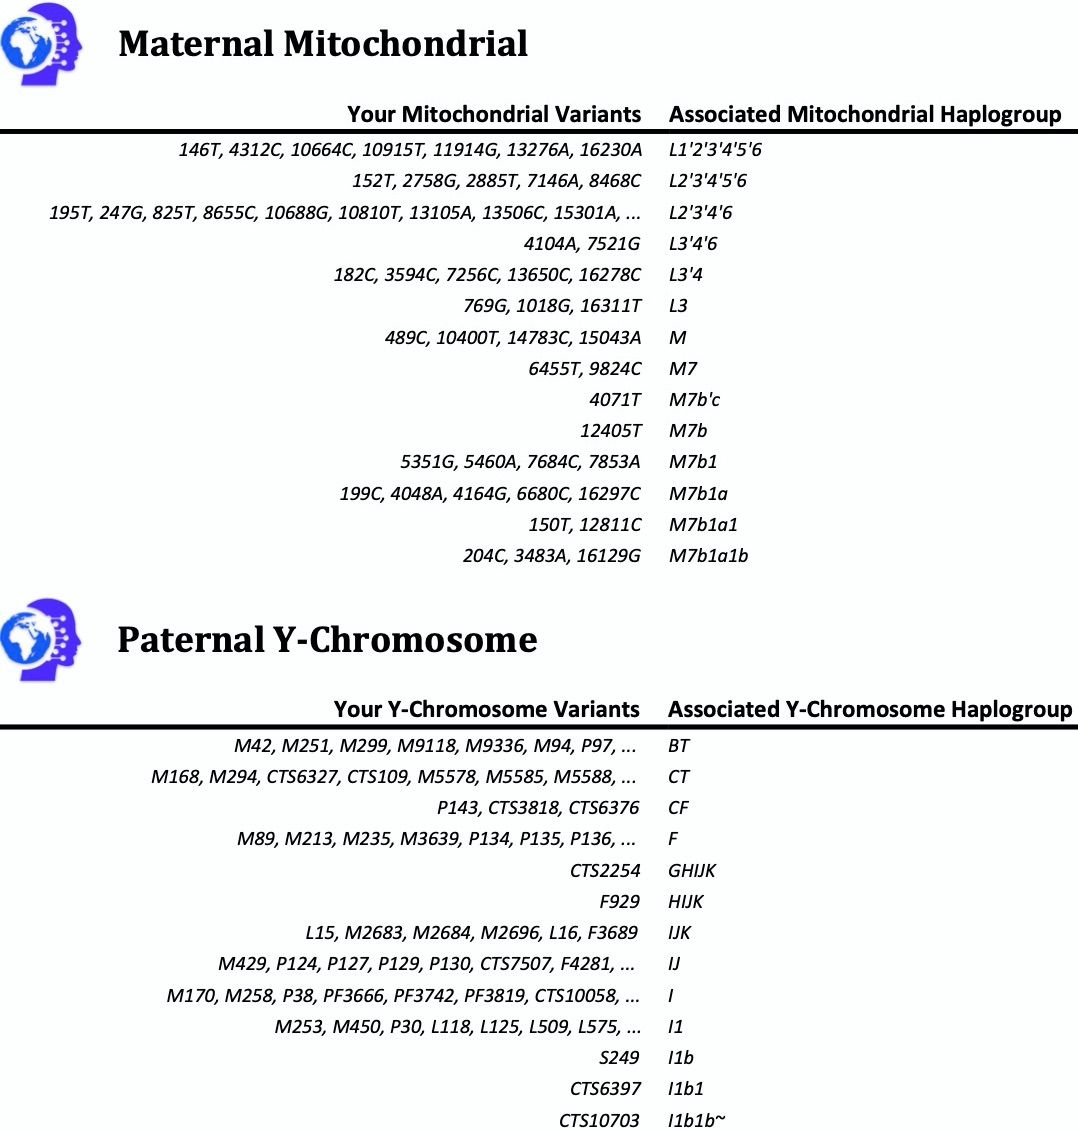 Paternal Y Chromosome and Maternal MT Haplogroup Assessment